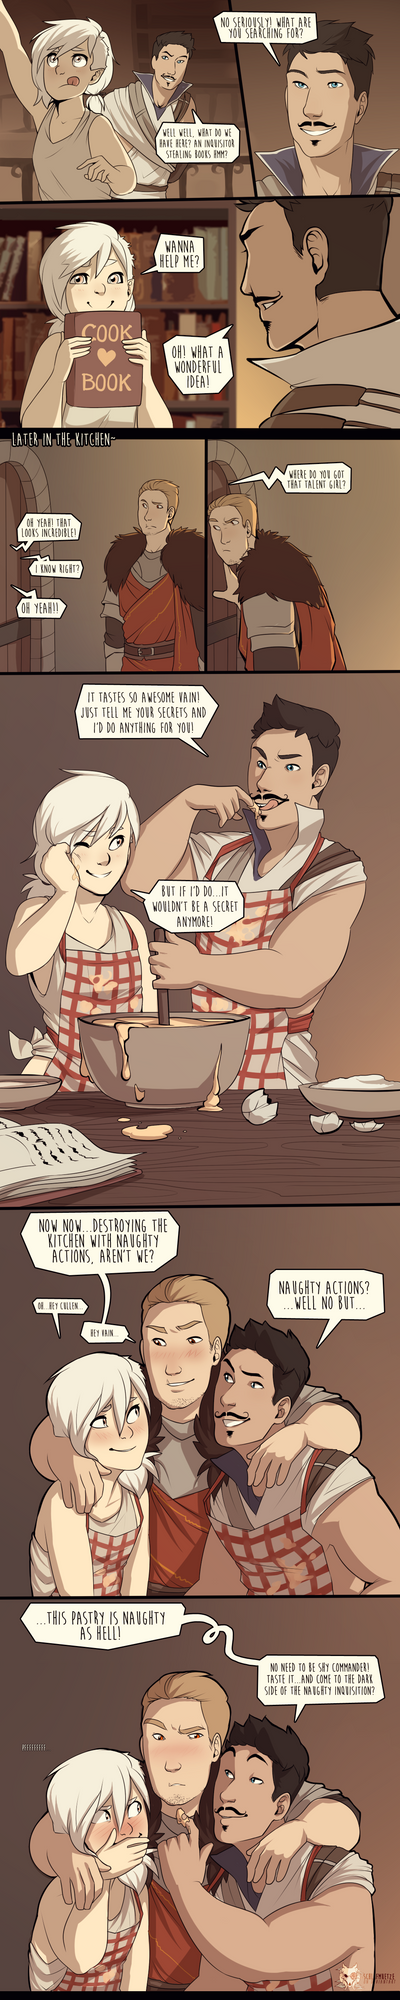 DAI_the naughty cook book by schl4fmuetze